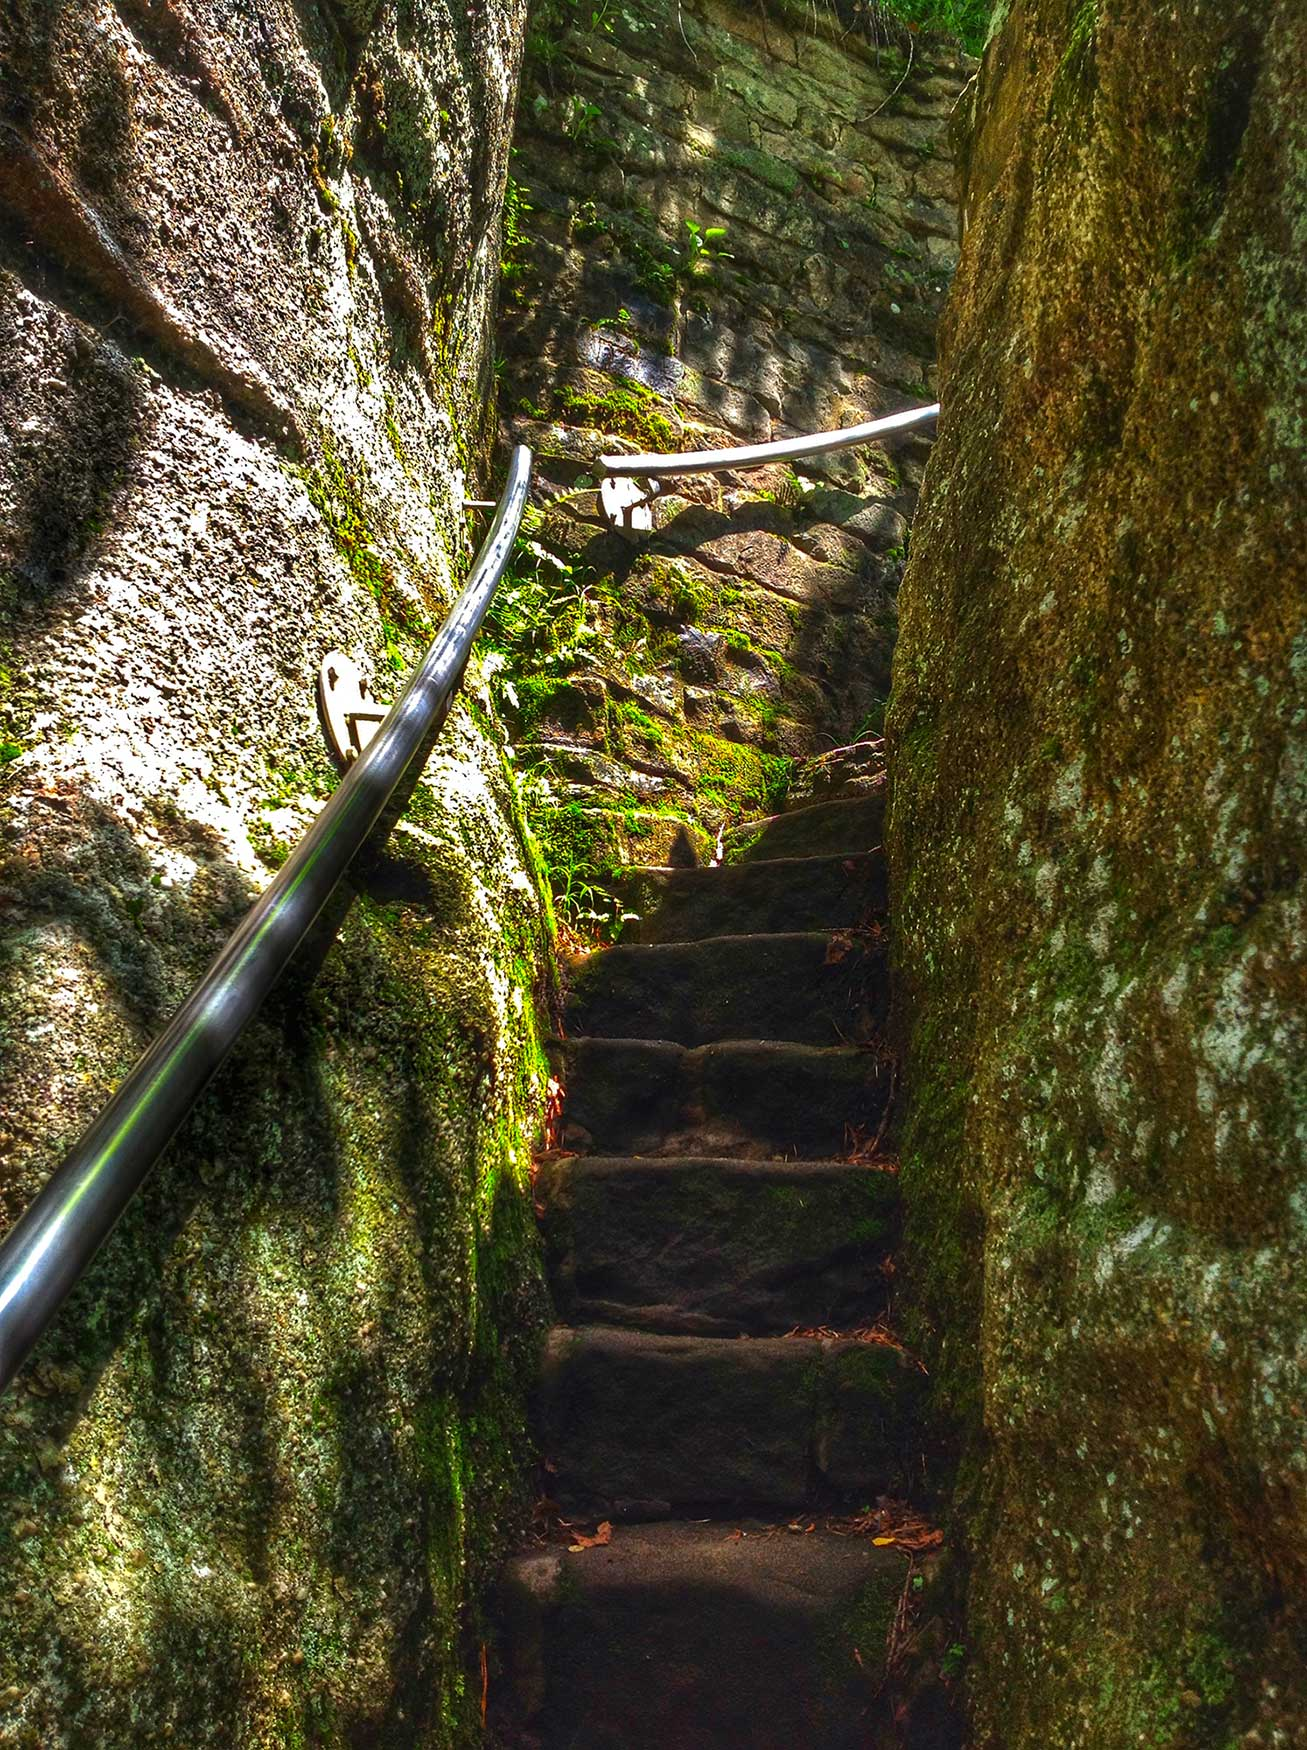 Stairs at Rimrock Trail - Allegheny National Forest